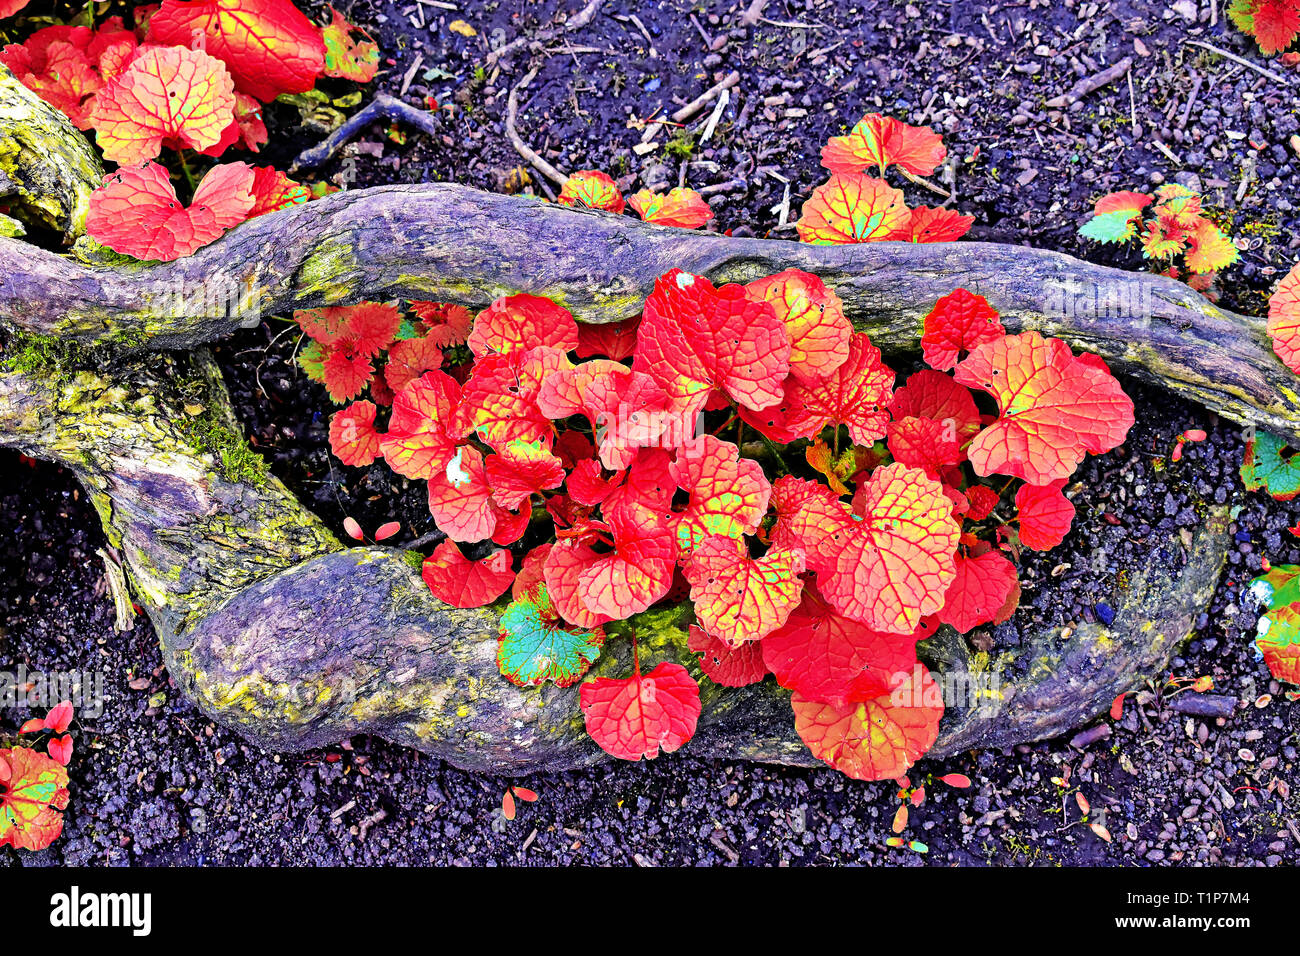 Red and yellow autumn leaves growing amid rotten logs in the woods - Stock Image